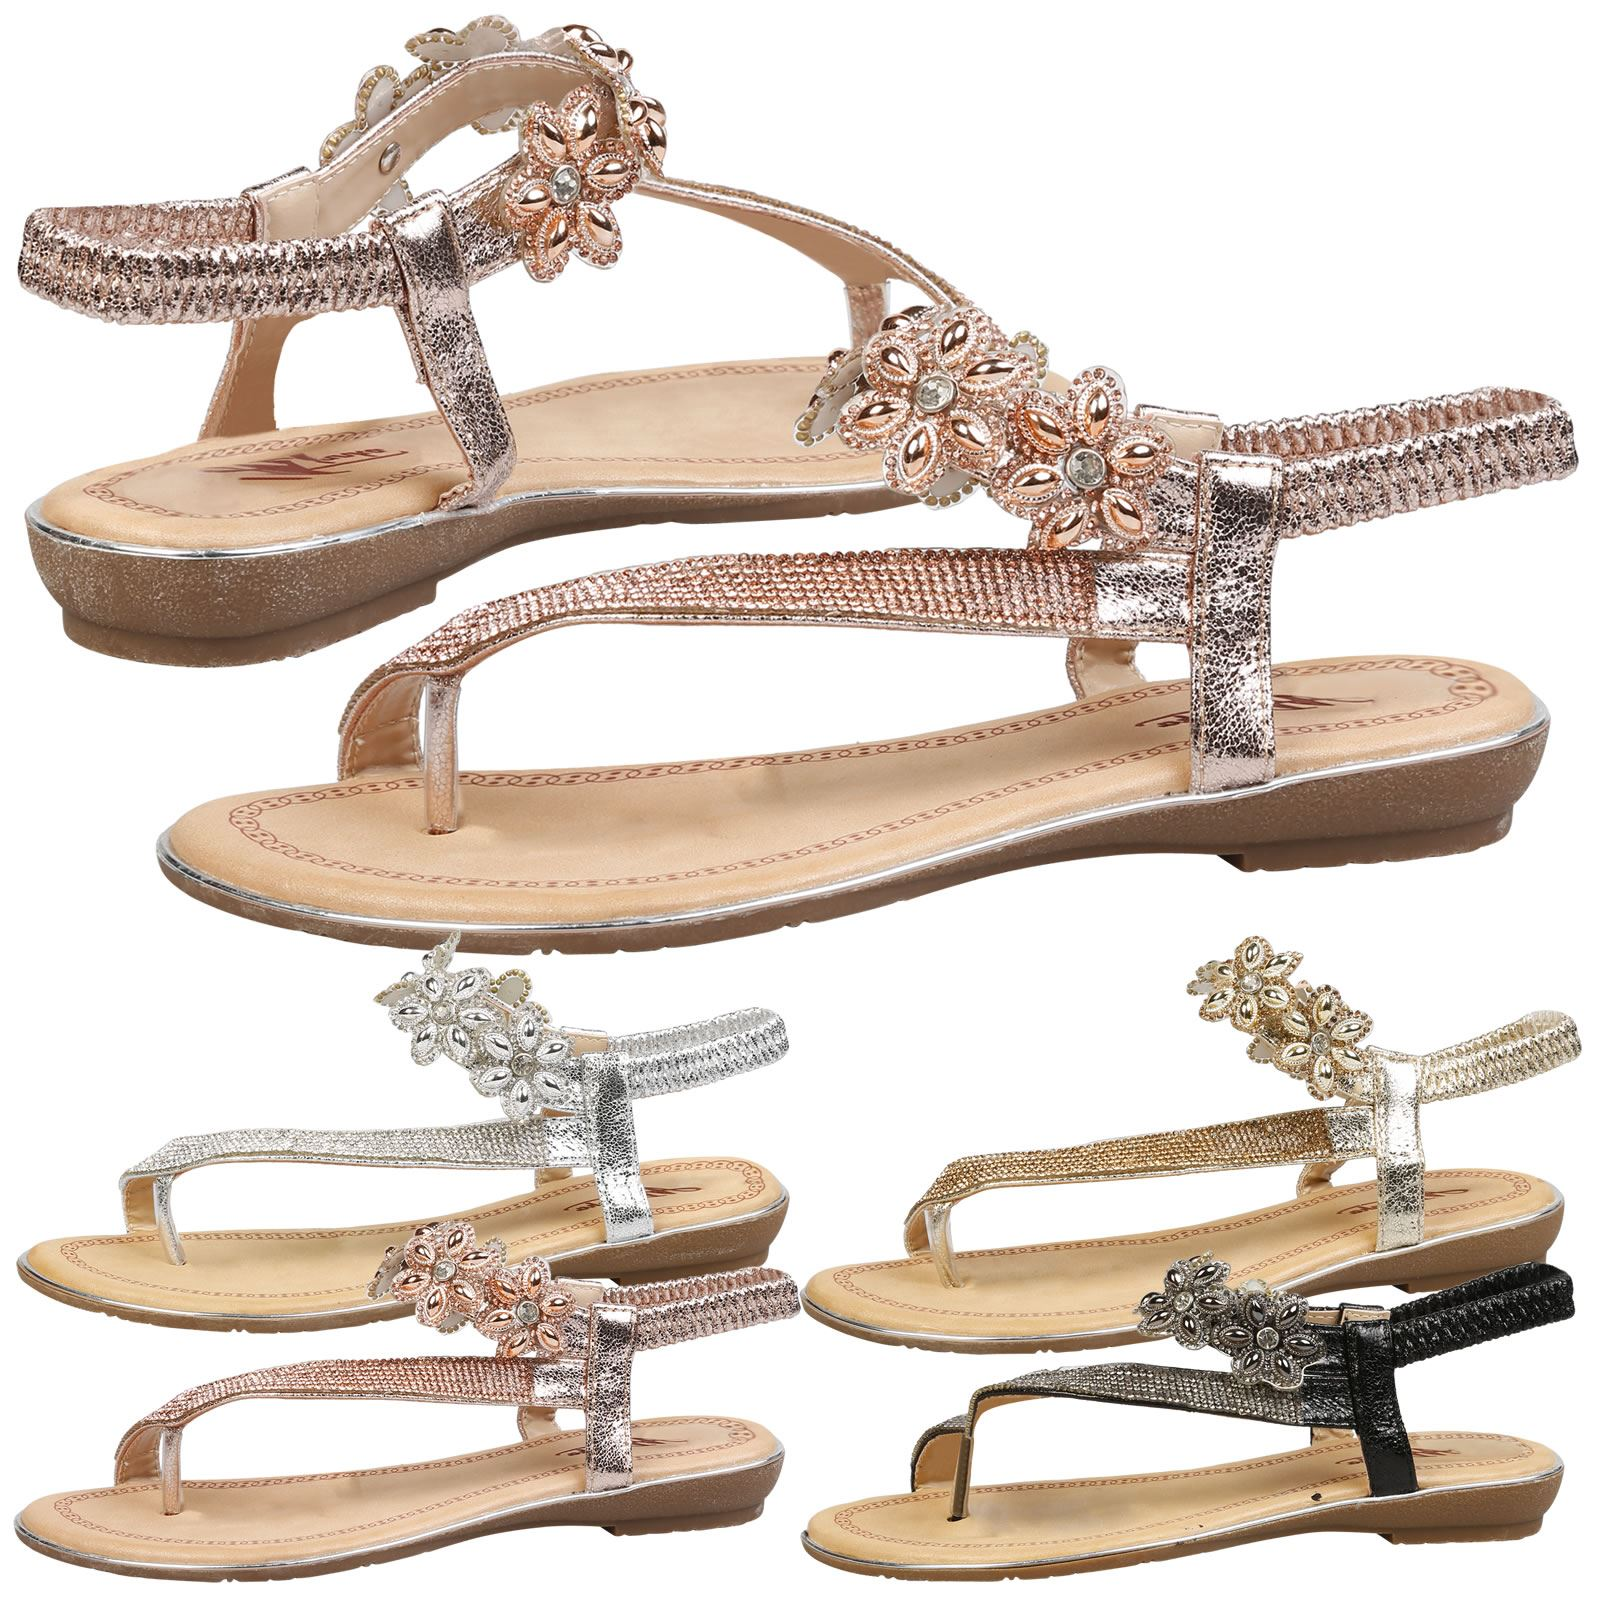 31193b49e3f8b0 Details about WOMENS SHOES LADIES ELASTICATED FLIP FLOP SANDALS DRESSY  EVENING OCCASION SUMMER